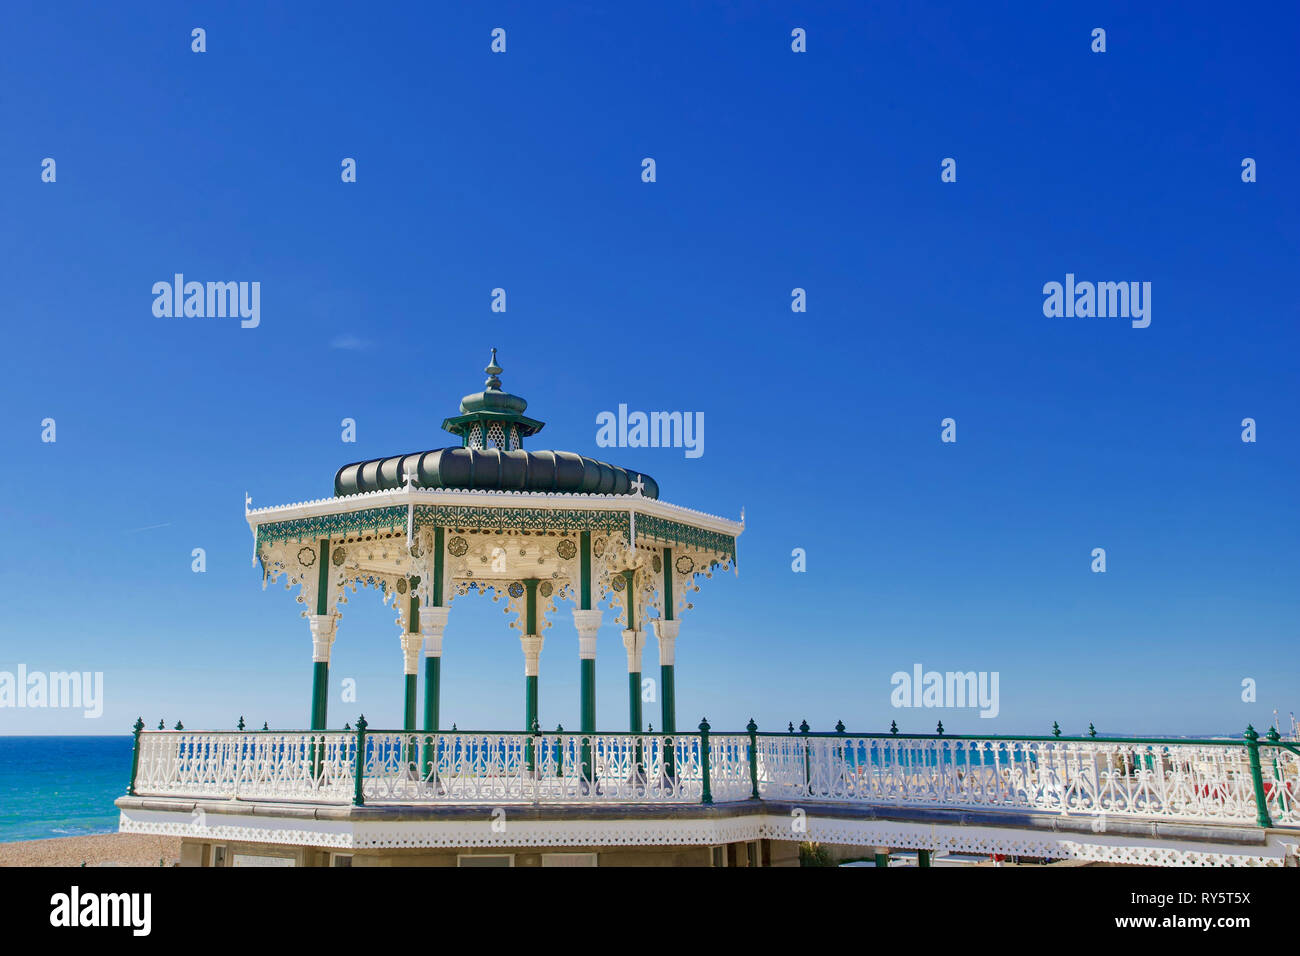 Bandstand, Brighton, East Sussex, England. - Stock Image